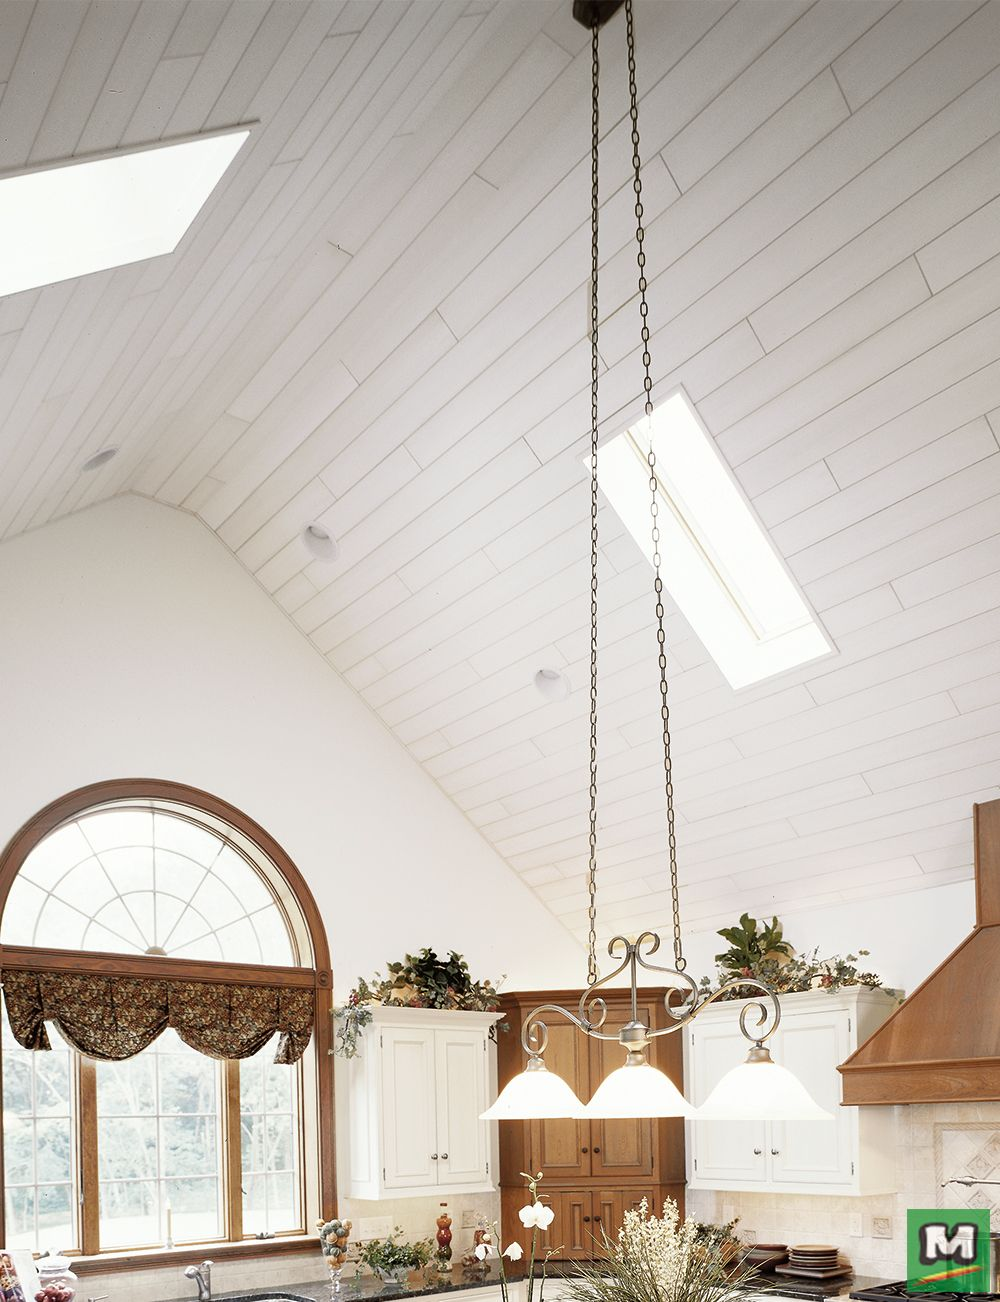 Armstrong Woodhaven Ceiling Planks Add The Warmth And Natural Beauty Of Natural Looking Wood To Your Home They Are Eas Ceiling Ceiling Lights White Painting